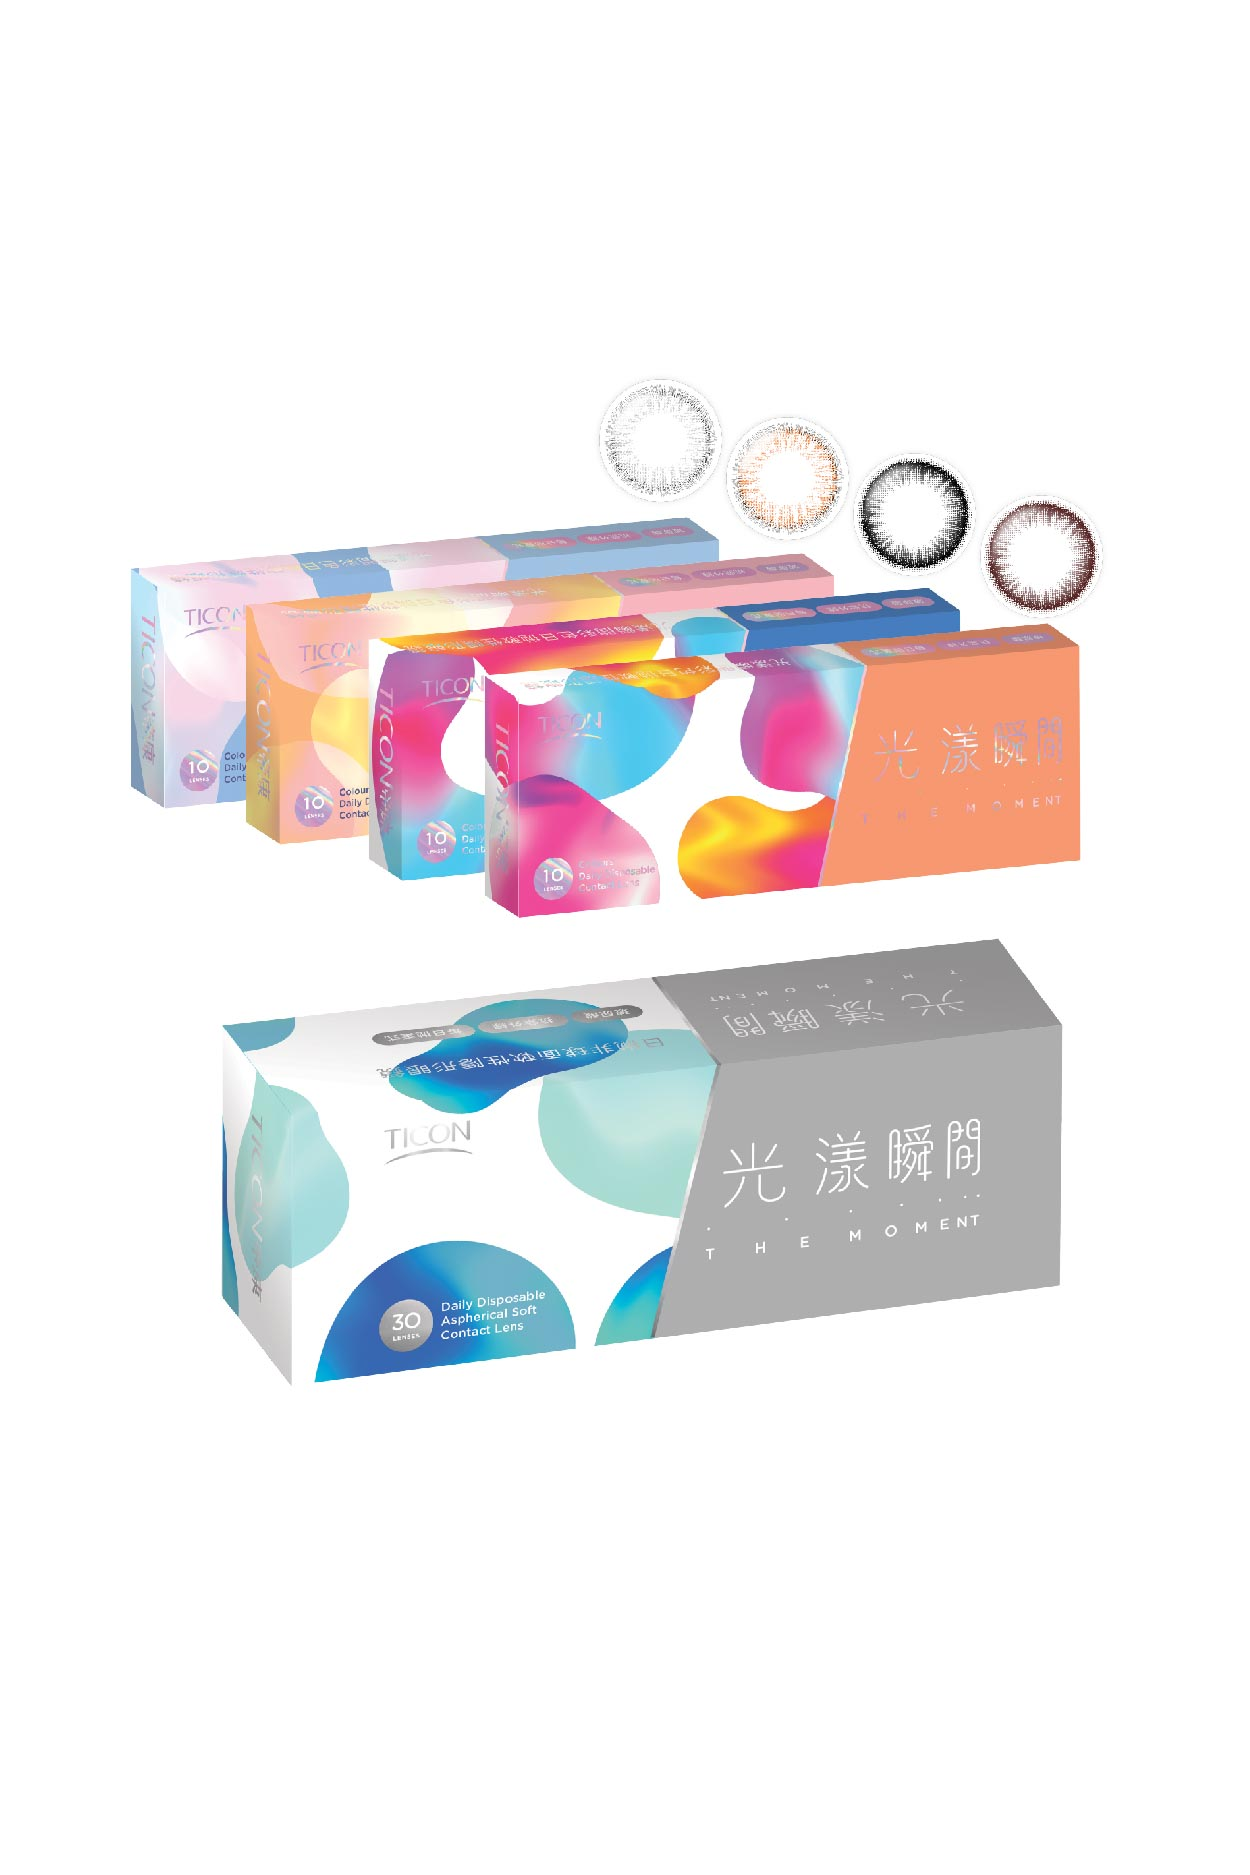 The Moment Daily Disposable Soft Contact Lens